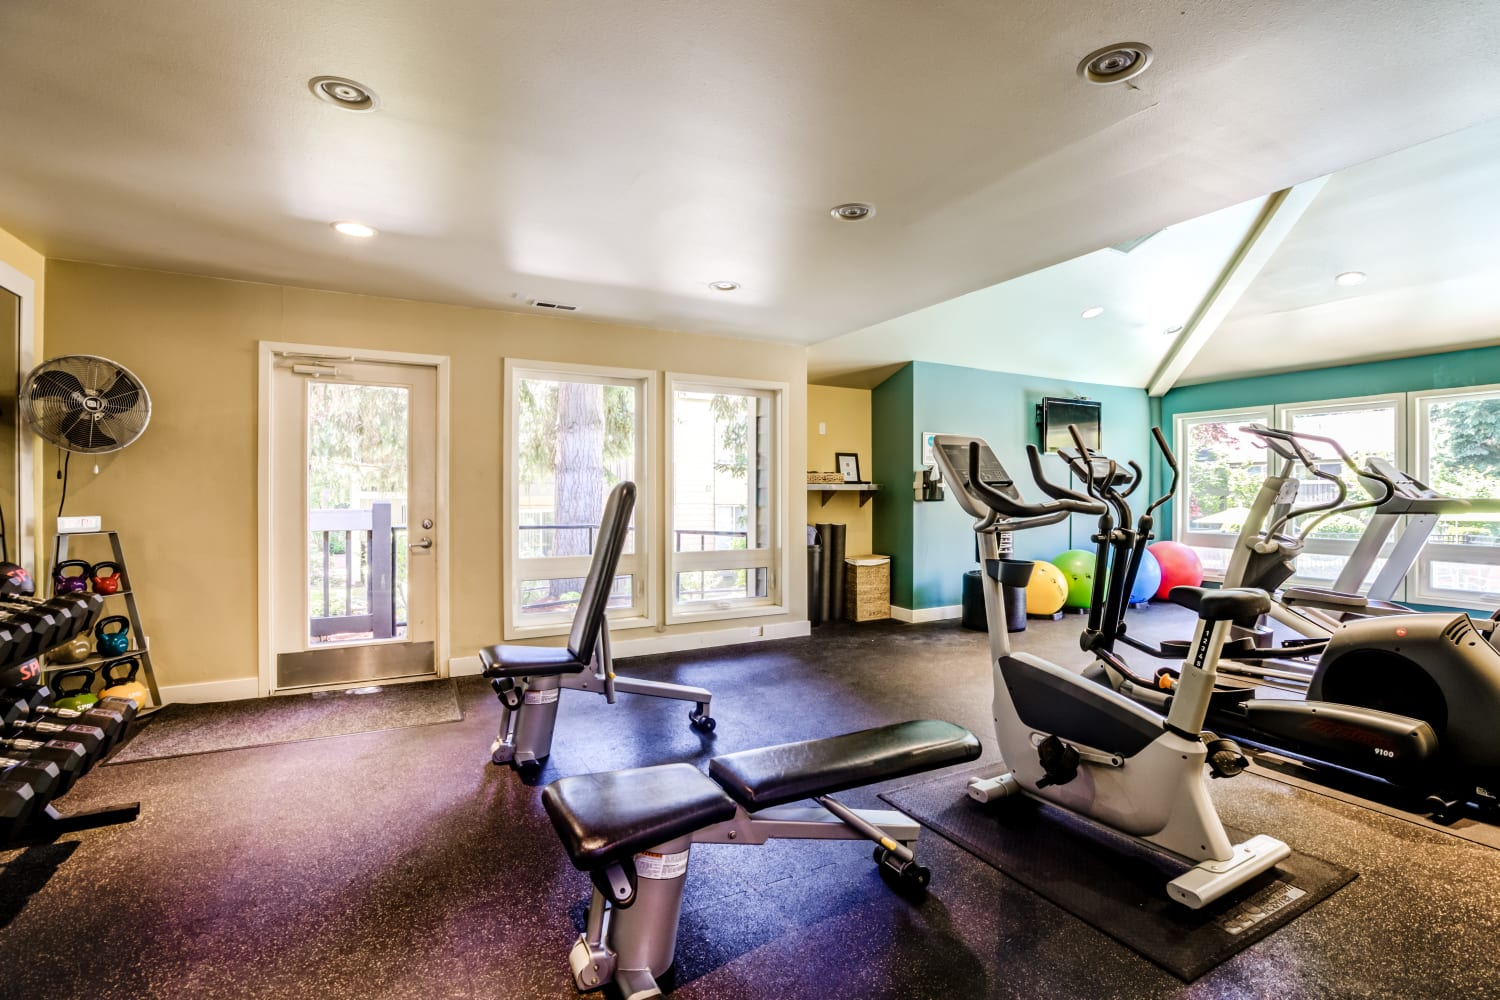 Fitness center at Vue Kirkland Apartments in Kirkland, Washington